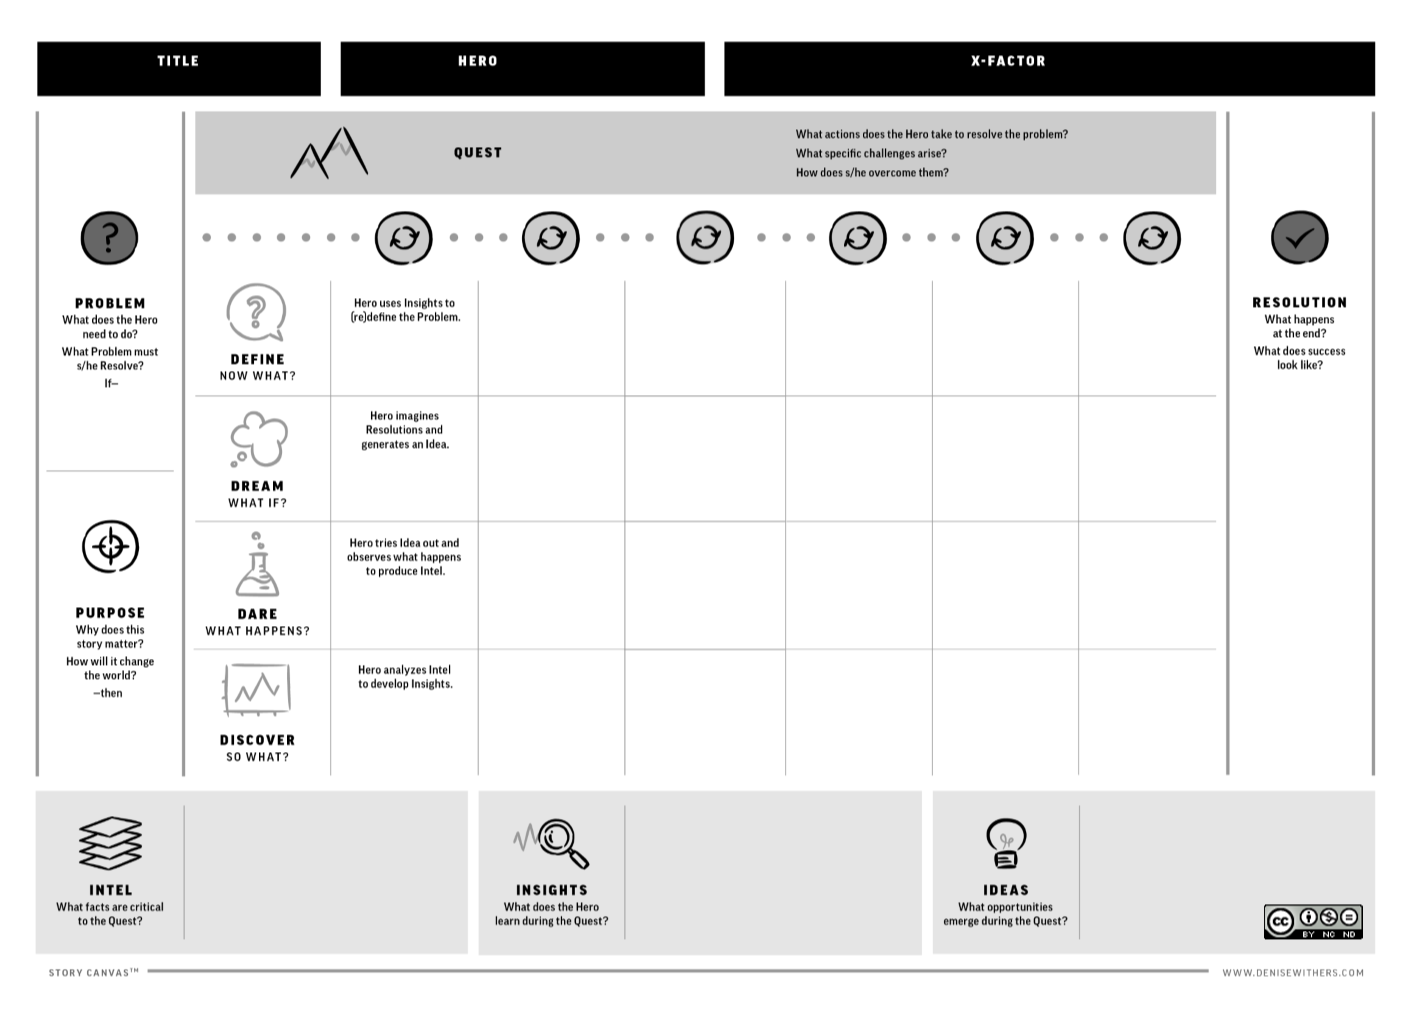 Story Canvas